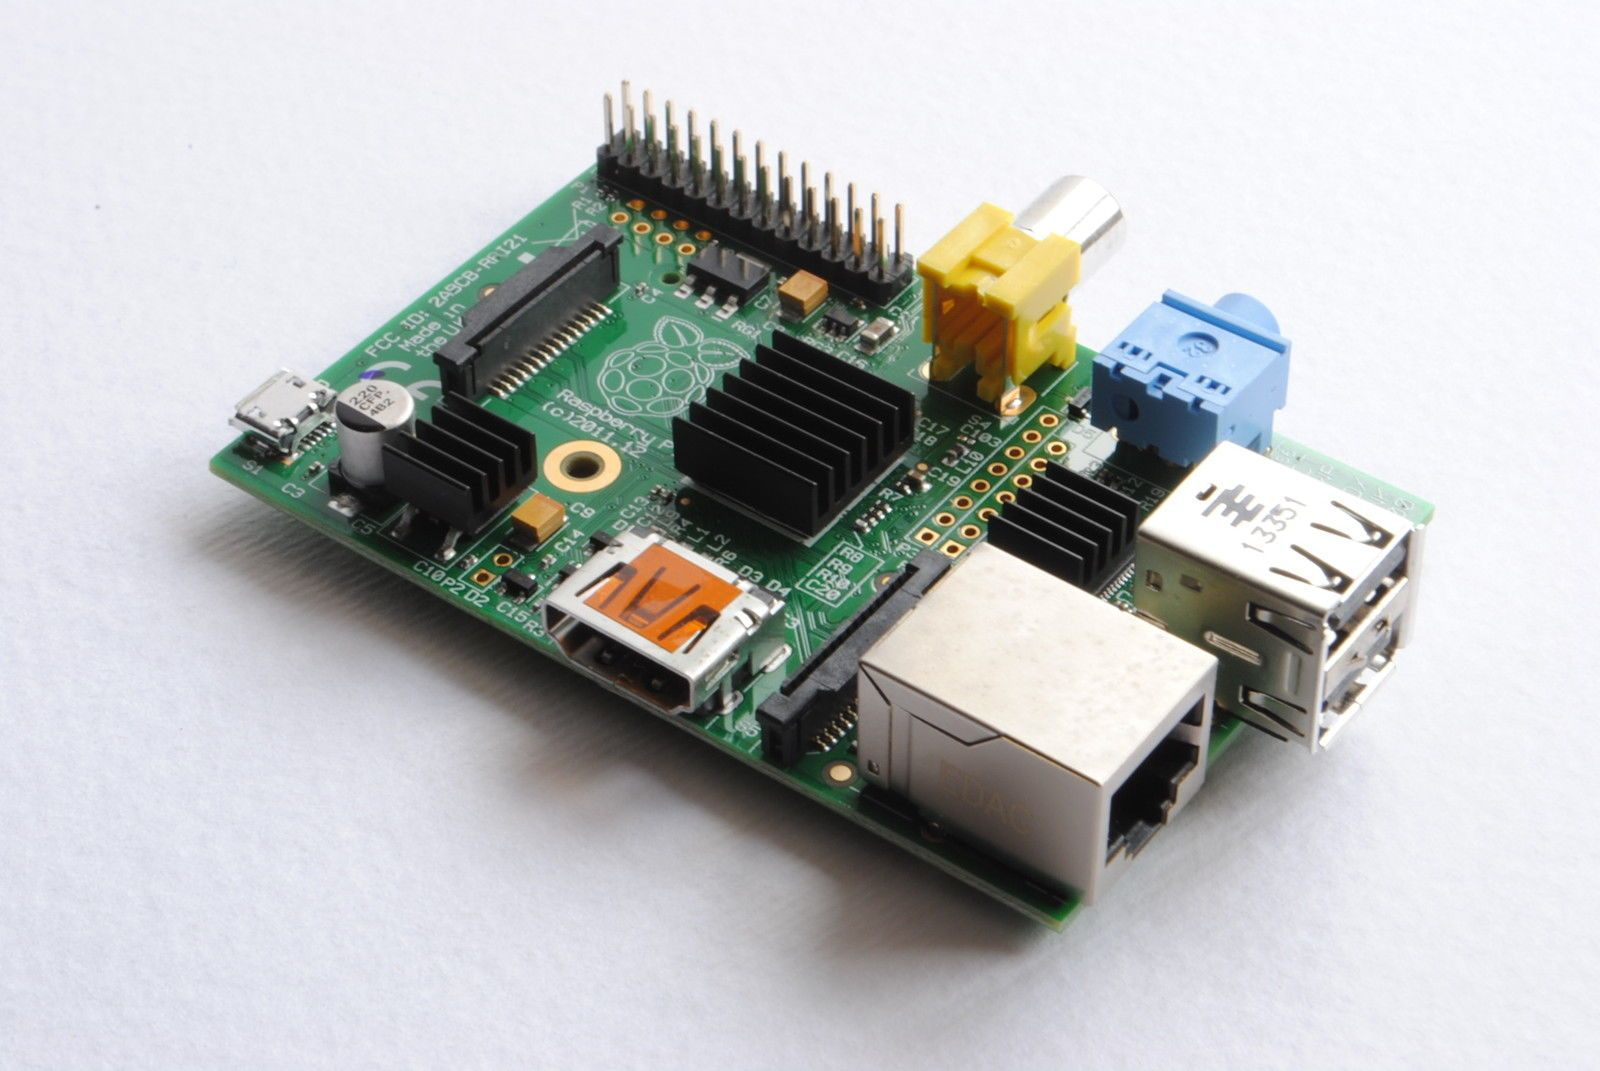 #Aluminium #heatsink kit for raspberry pi - 3 pcs #black heat sink cooling,  View more on the LINK: http://www.zeppy.io/product/gb/2/262720833294/